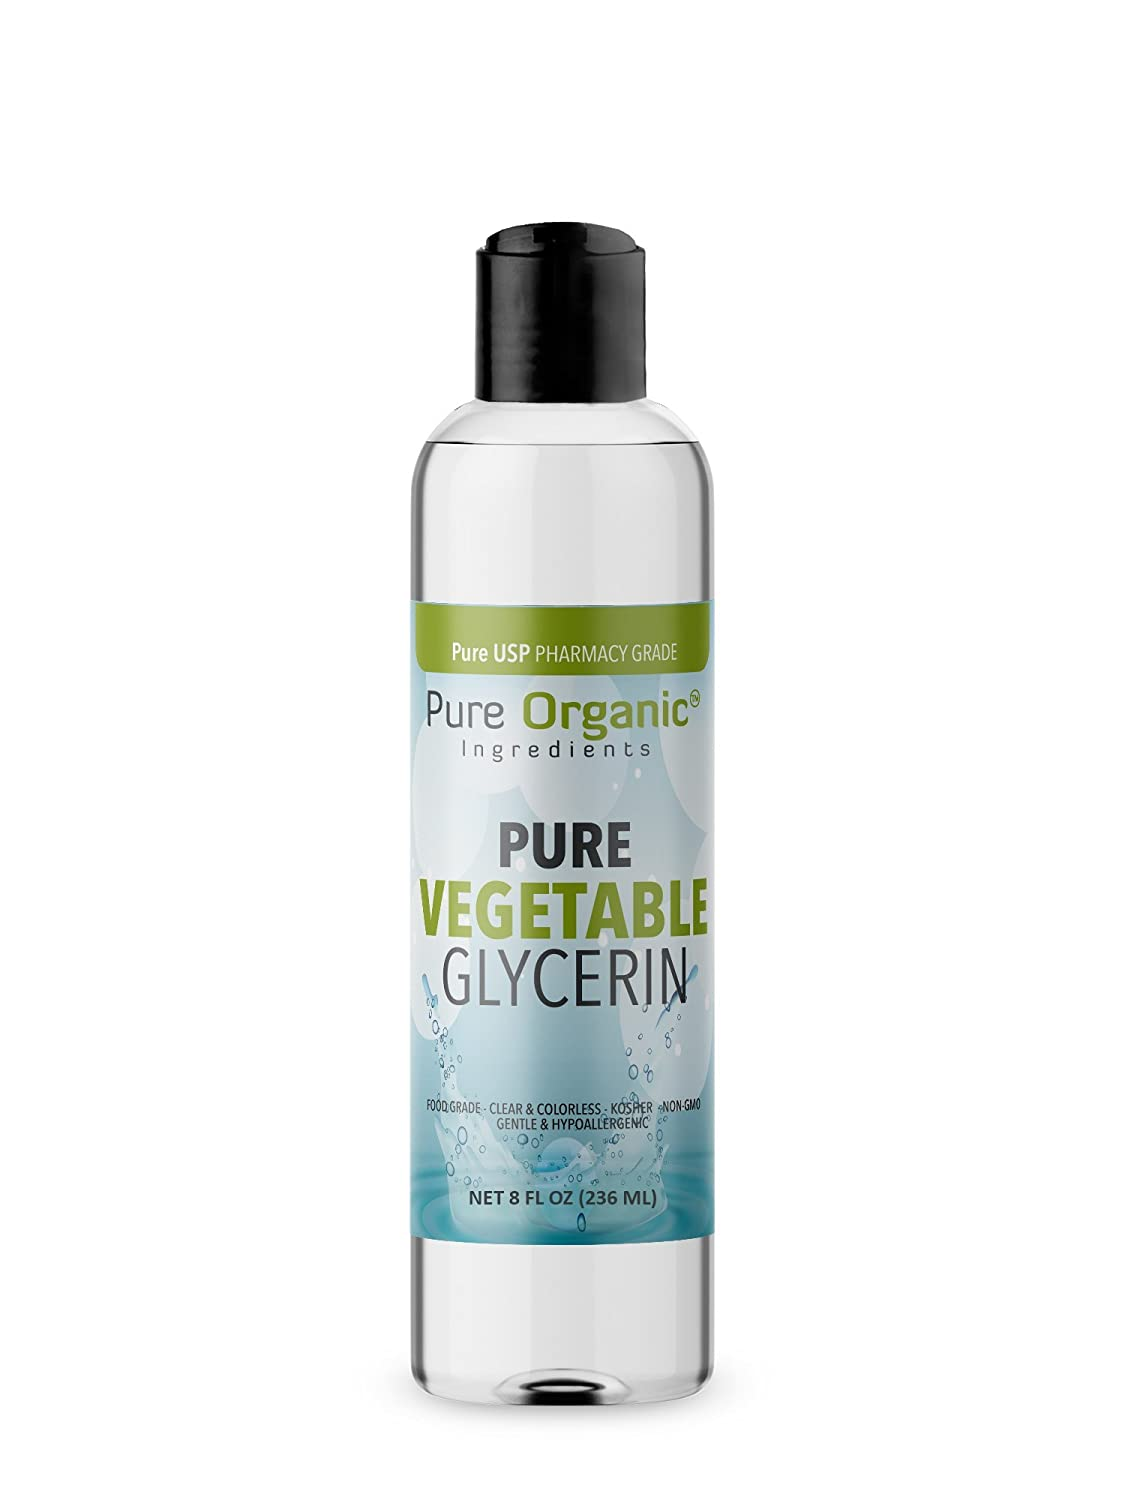 Vegetable Glycerin (8 oz.) by Pure Organic Ingredients, Food & USP Pharmaceutical Grade, Kosher, Vegan, Hypoallergenic Moisturizer And Skin Cleanser